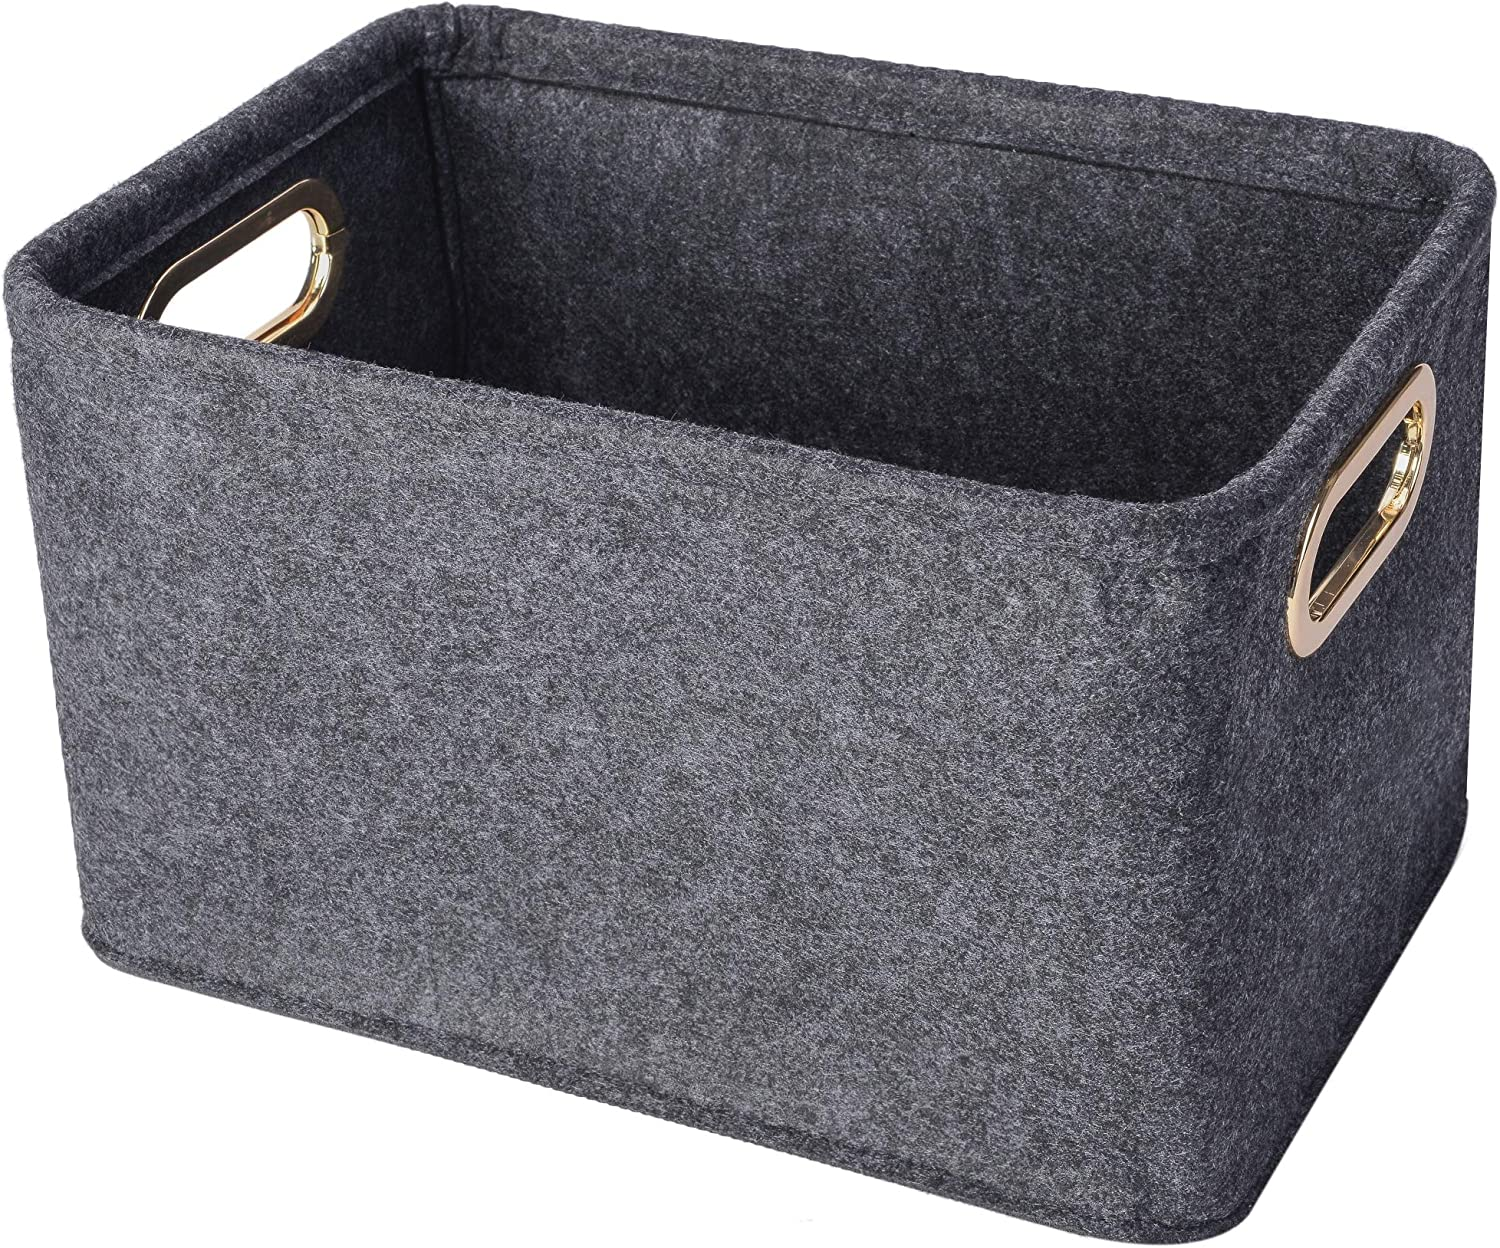 Collapsible Storage Bins Foldable Felt Fabric Storage Basket Organizer Boxes Containers with Handles Metal Handles for Nursery Toys,Kids Room,Clothes,Towels,Magazine (Dark grey)